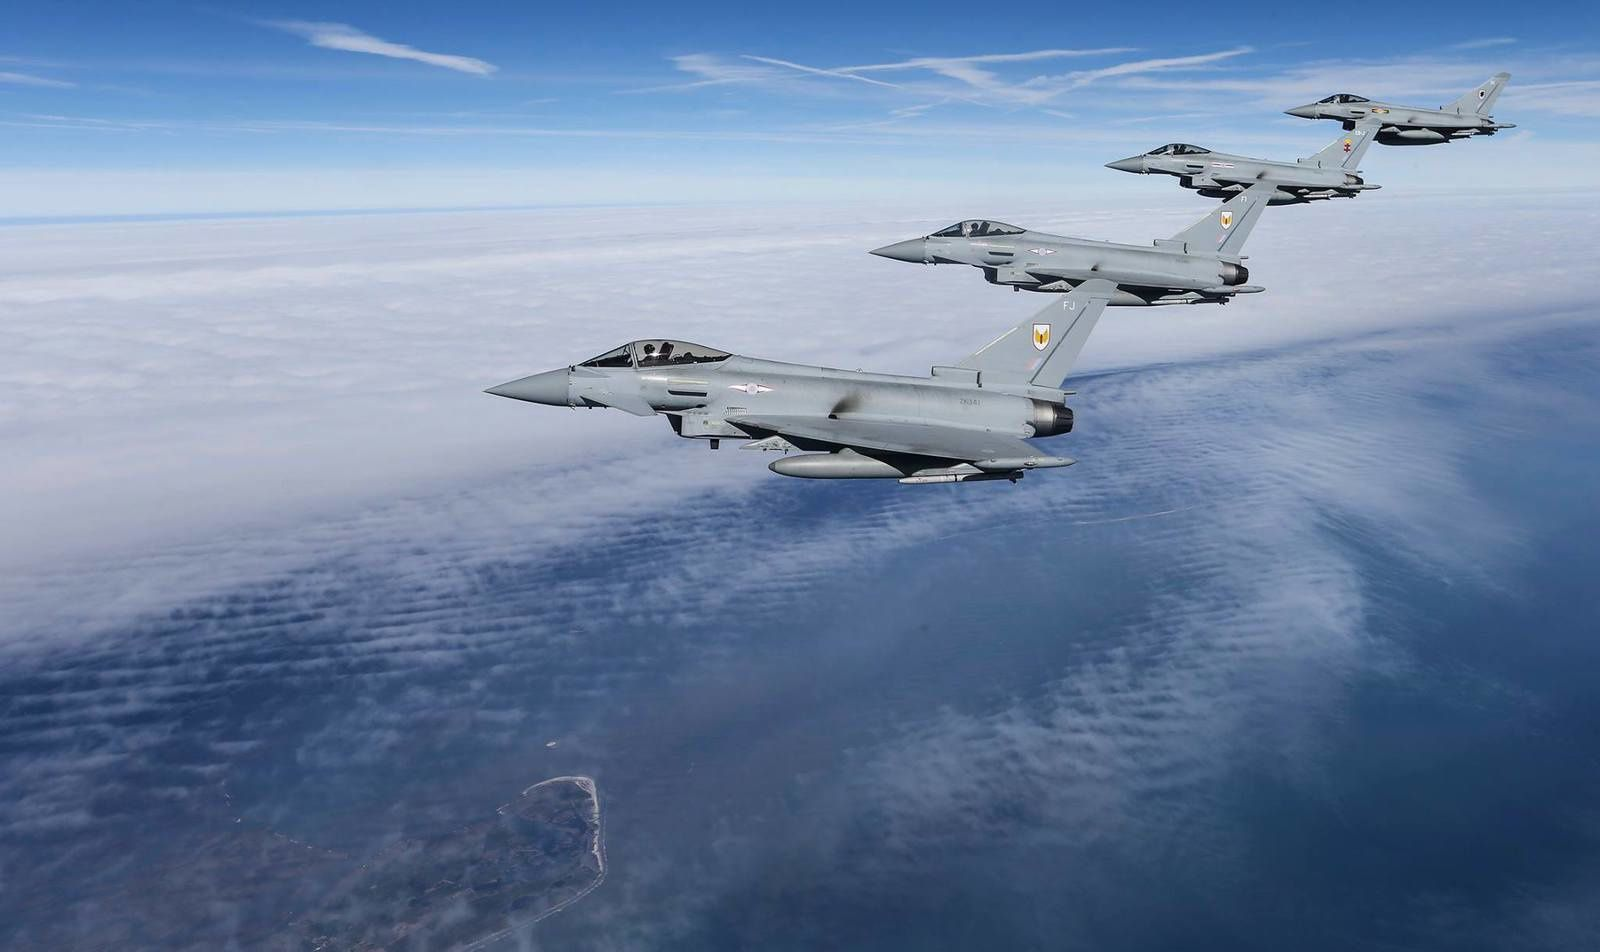 PHOTOS - Les Eurofighter Typhoon de la Royal Air Force se sont envolés pour l'exercice Red Flag